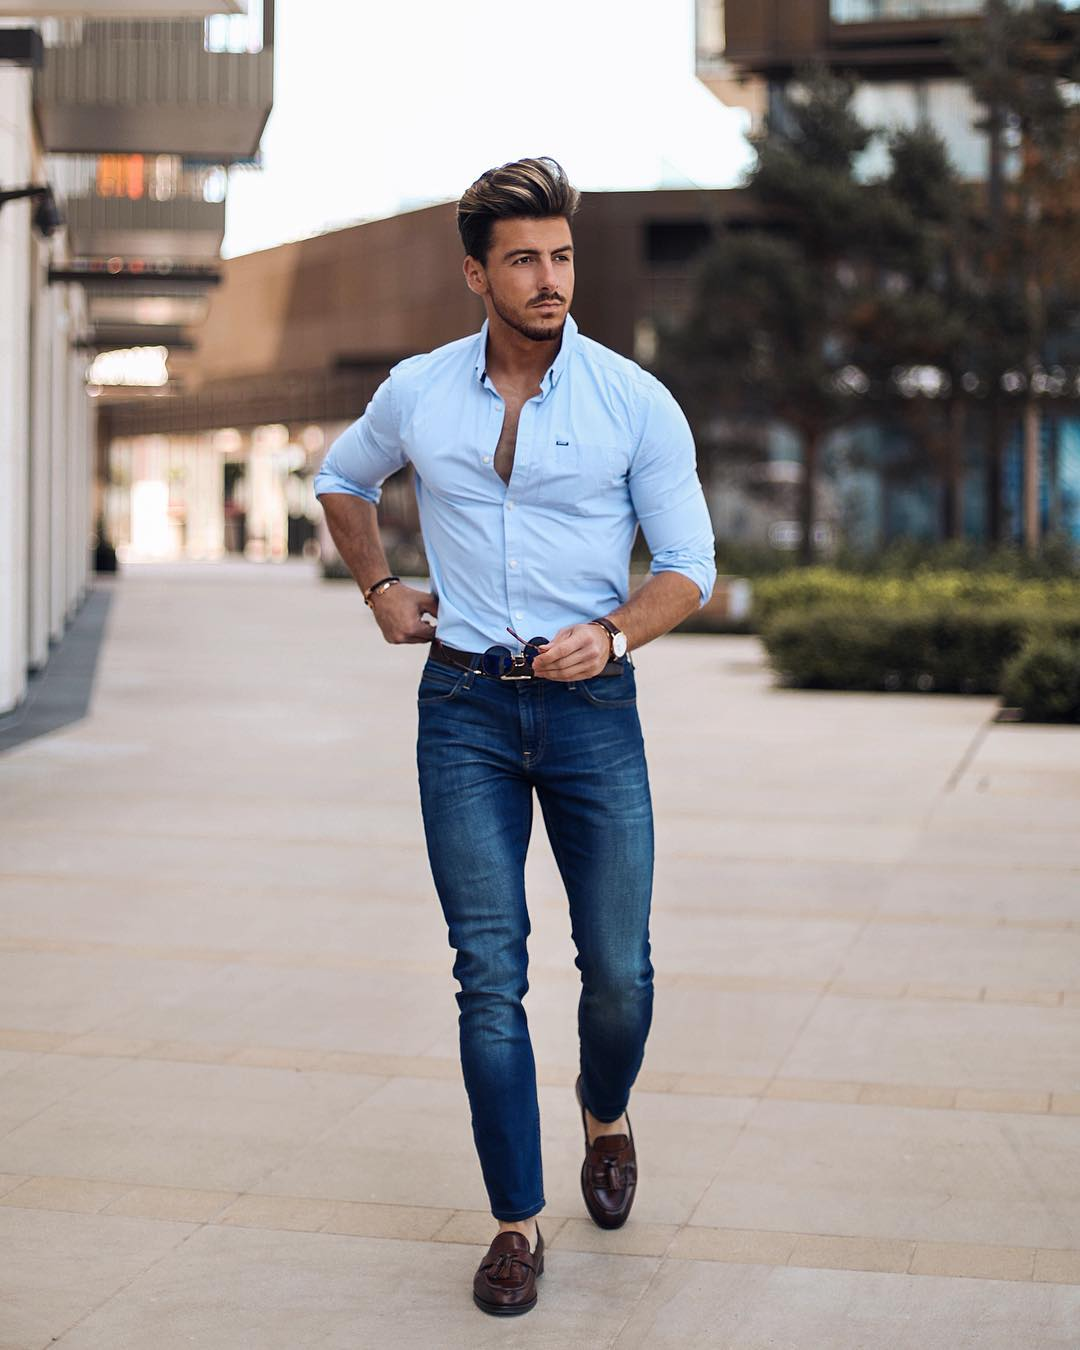 5 Simple Shirt Outfits For Men \u2013 LIFESTYLE BY PS